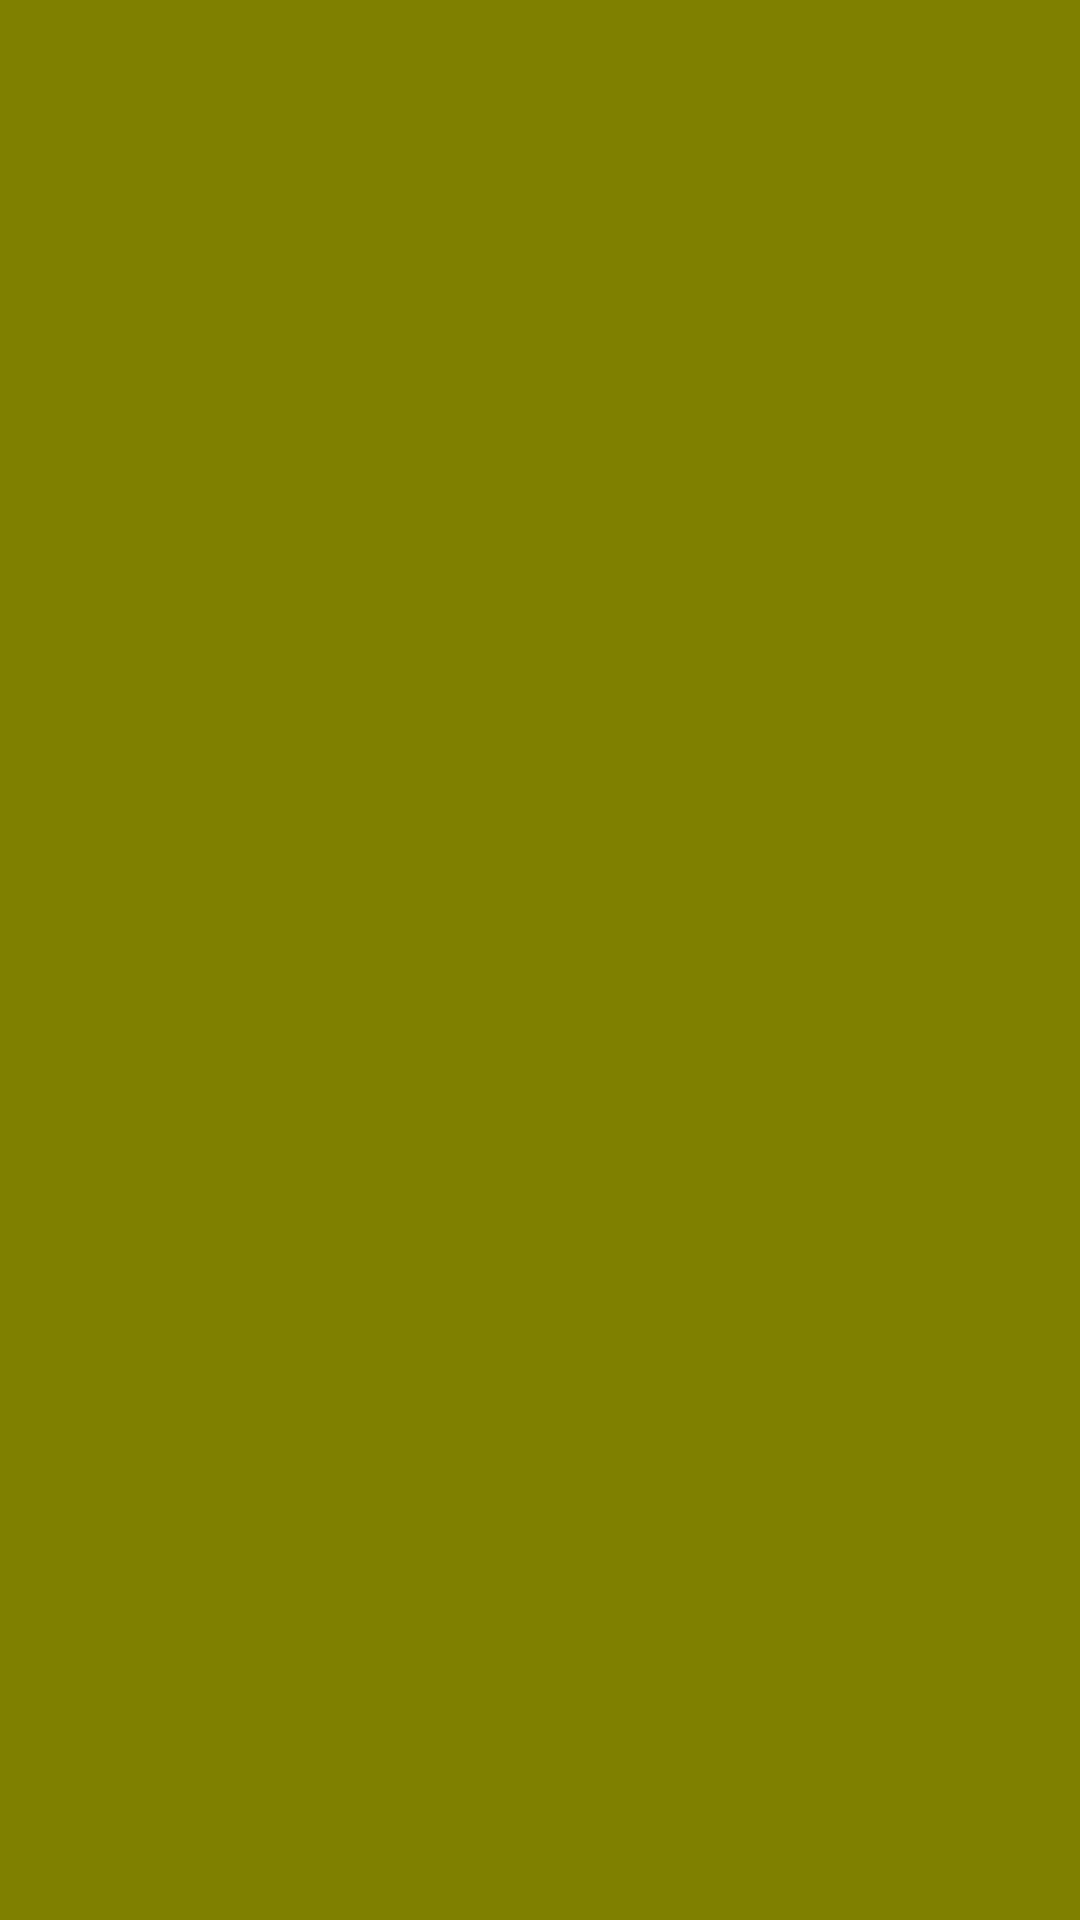 1080x1920 Olive Solid Color Background